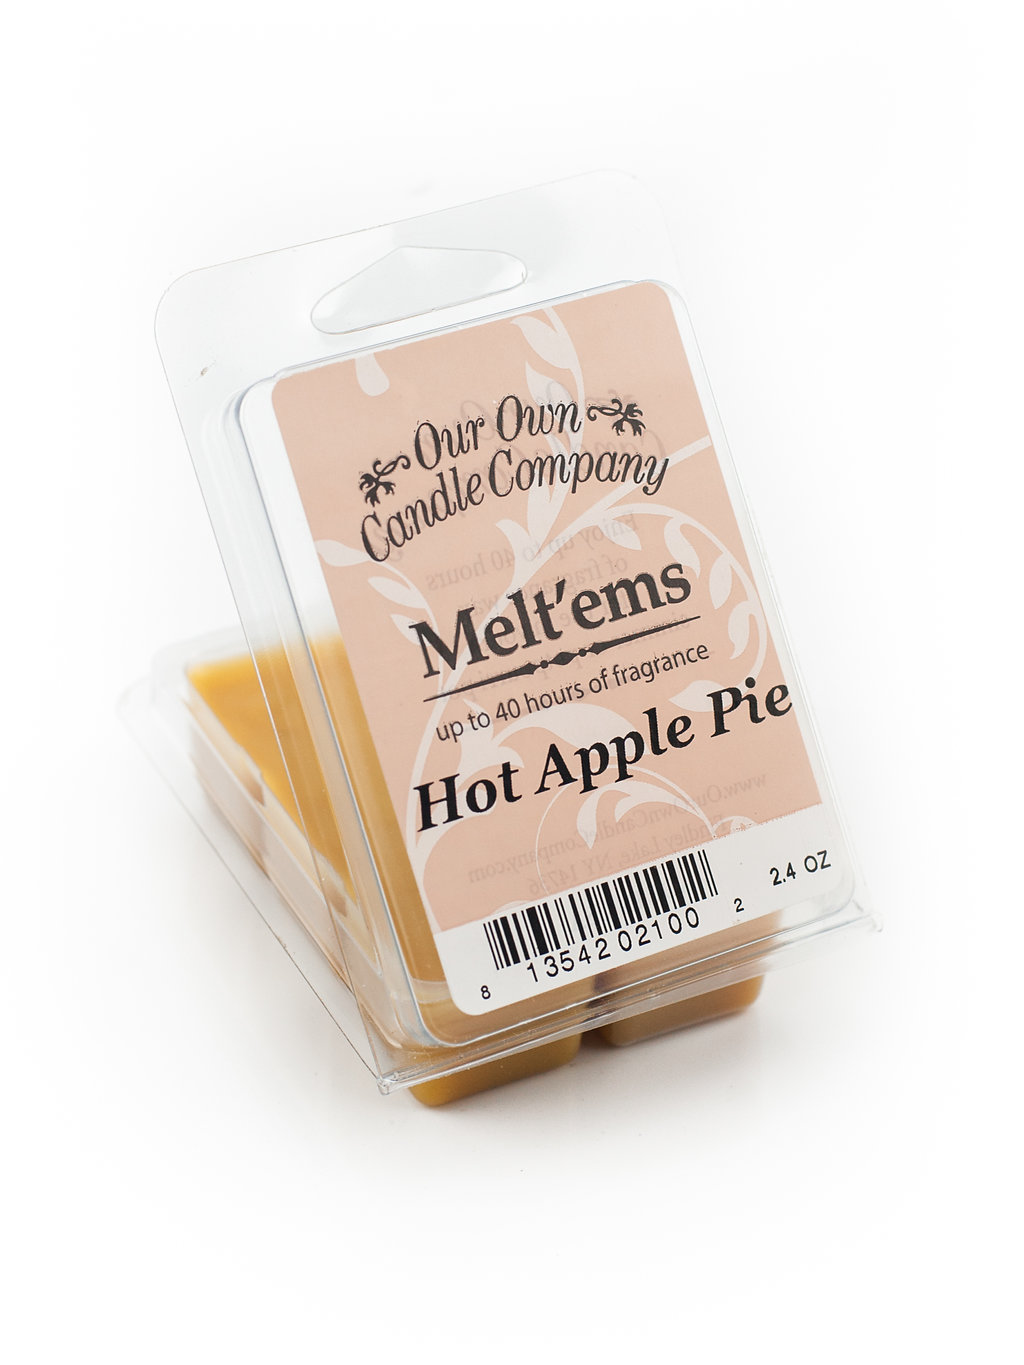 HOT APPLE PIE MELT 6 CUBE 2.4 OZ UPC# 813542021002